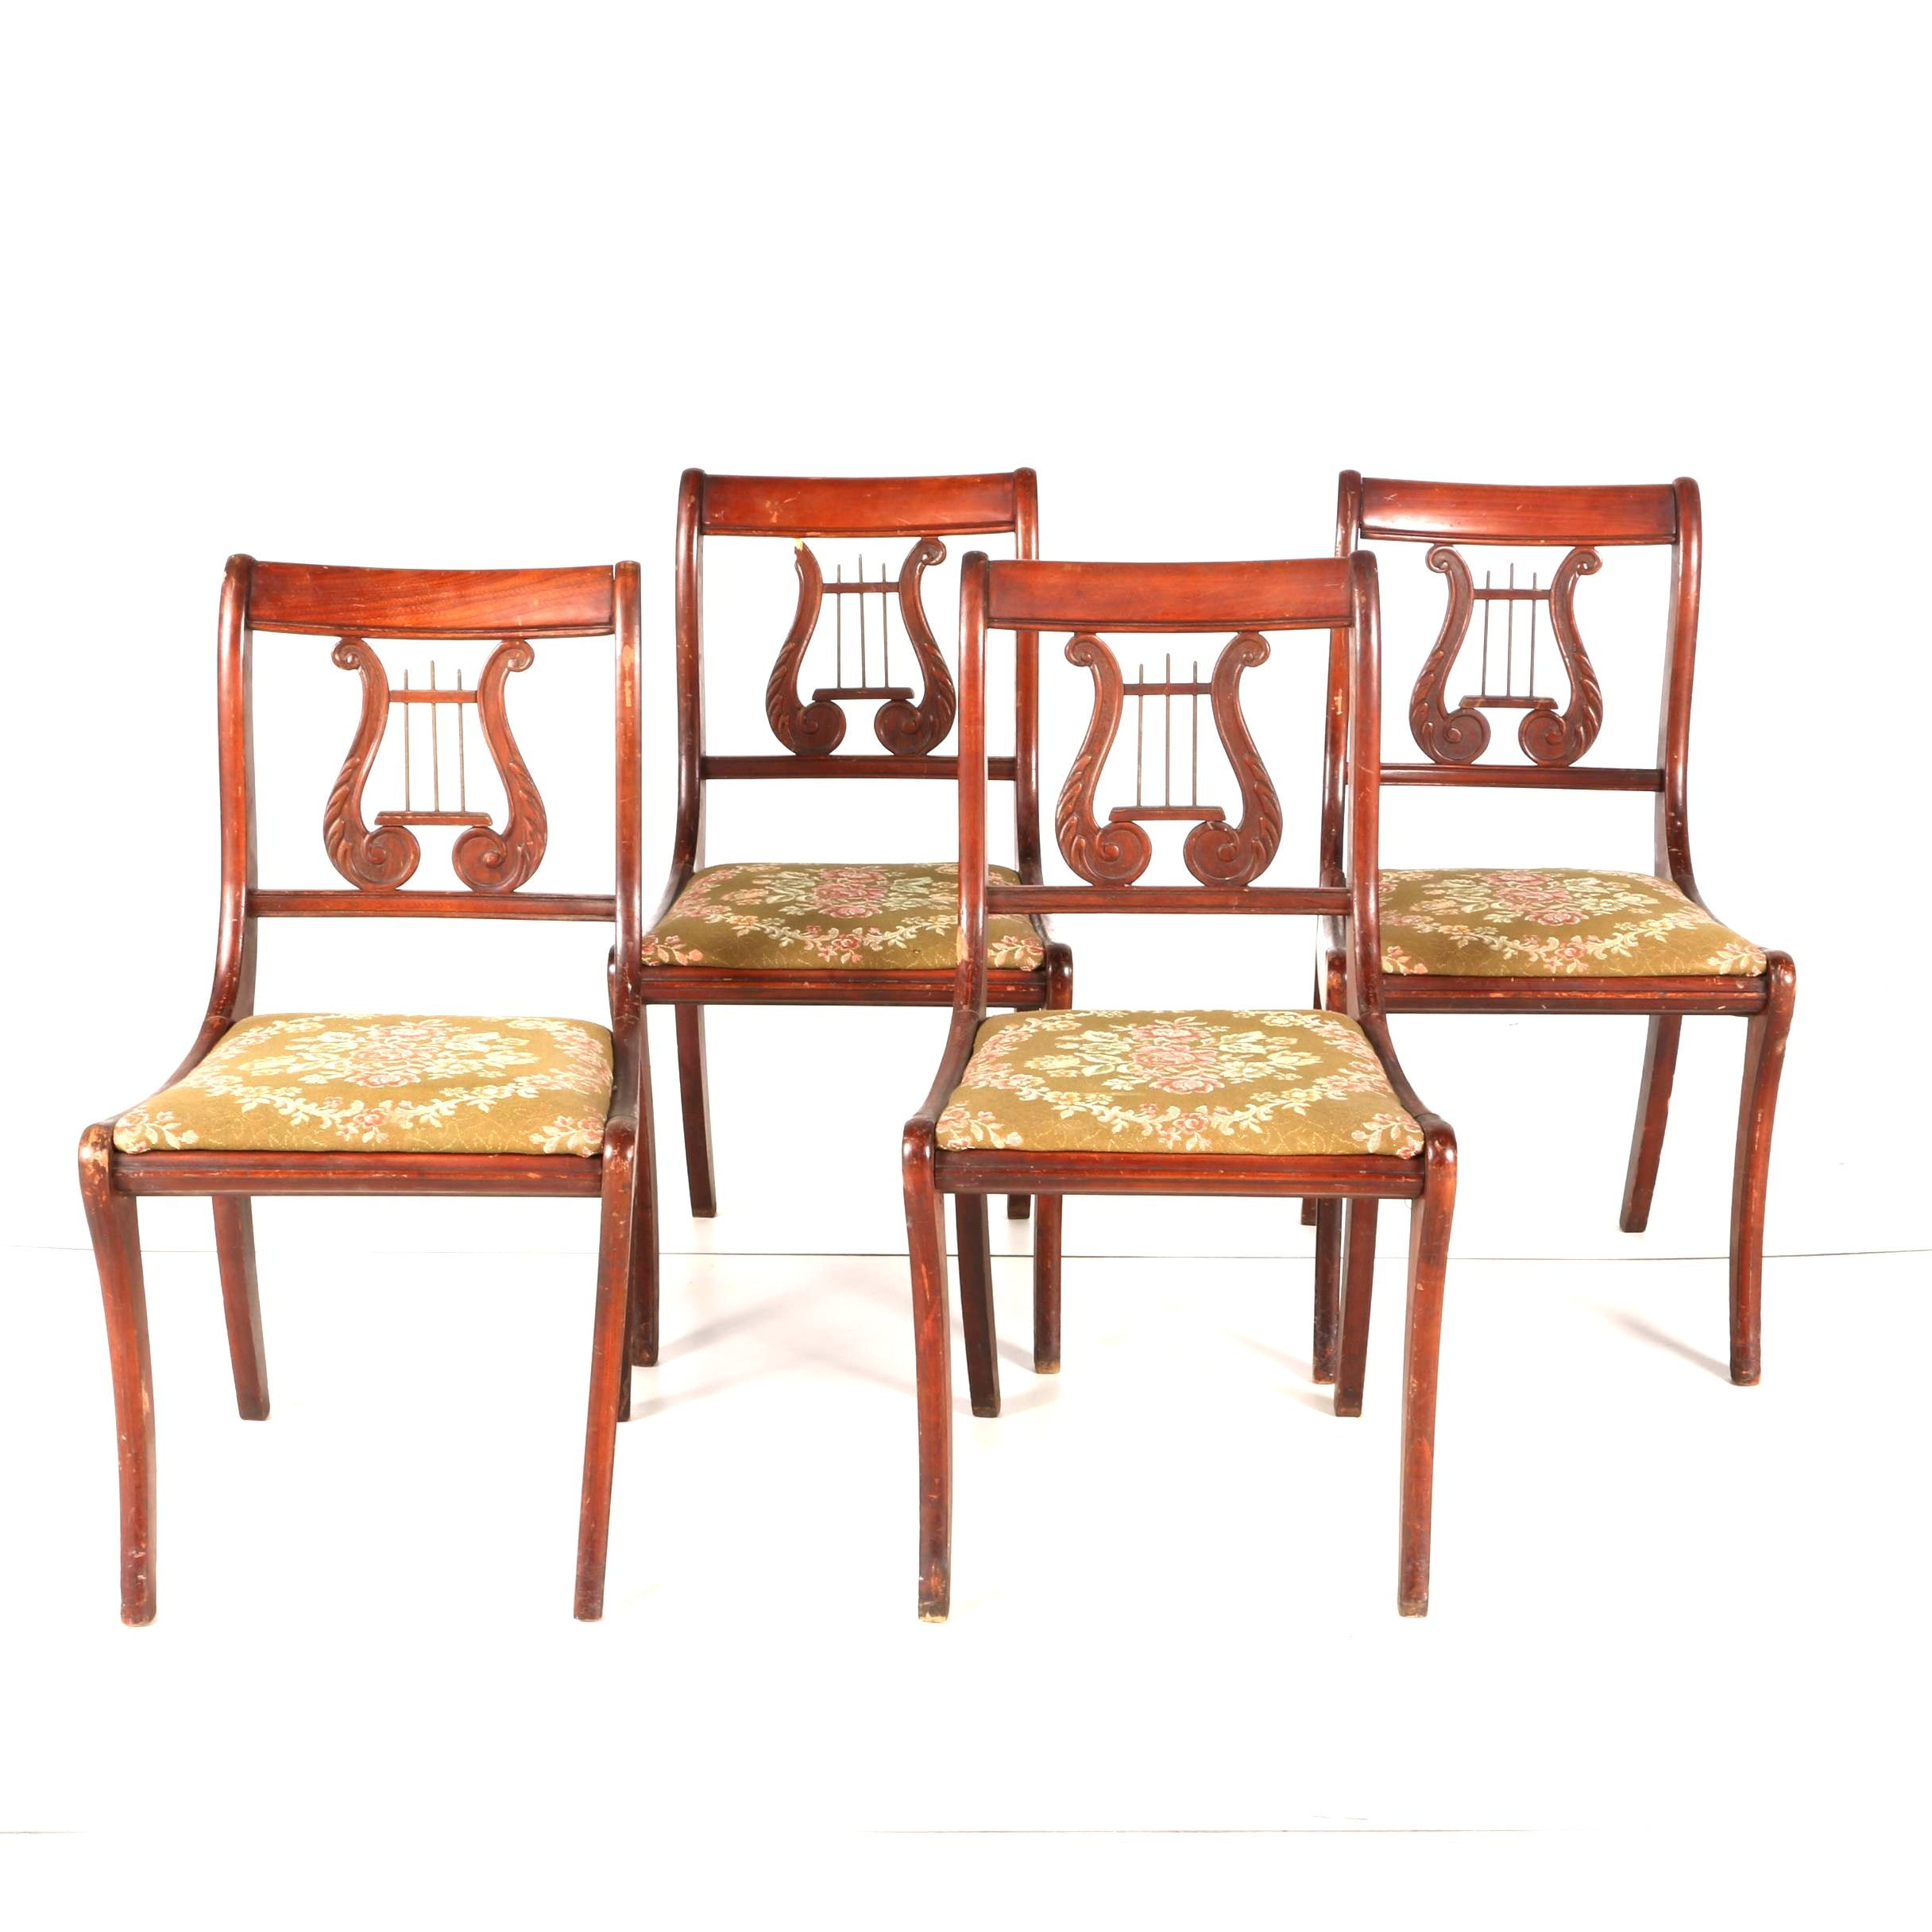 Mahogany Lyre Back Dining Chairs With Floral Upholstery